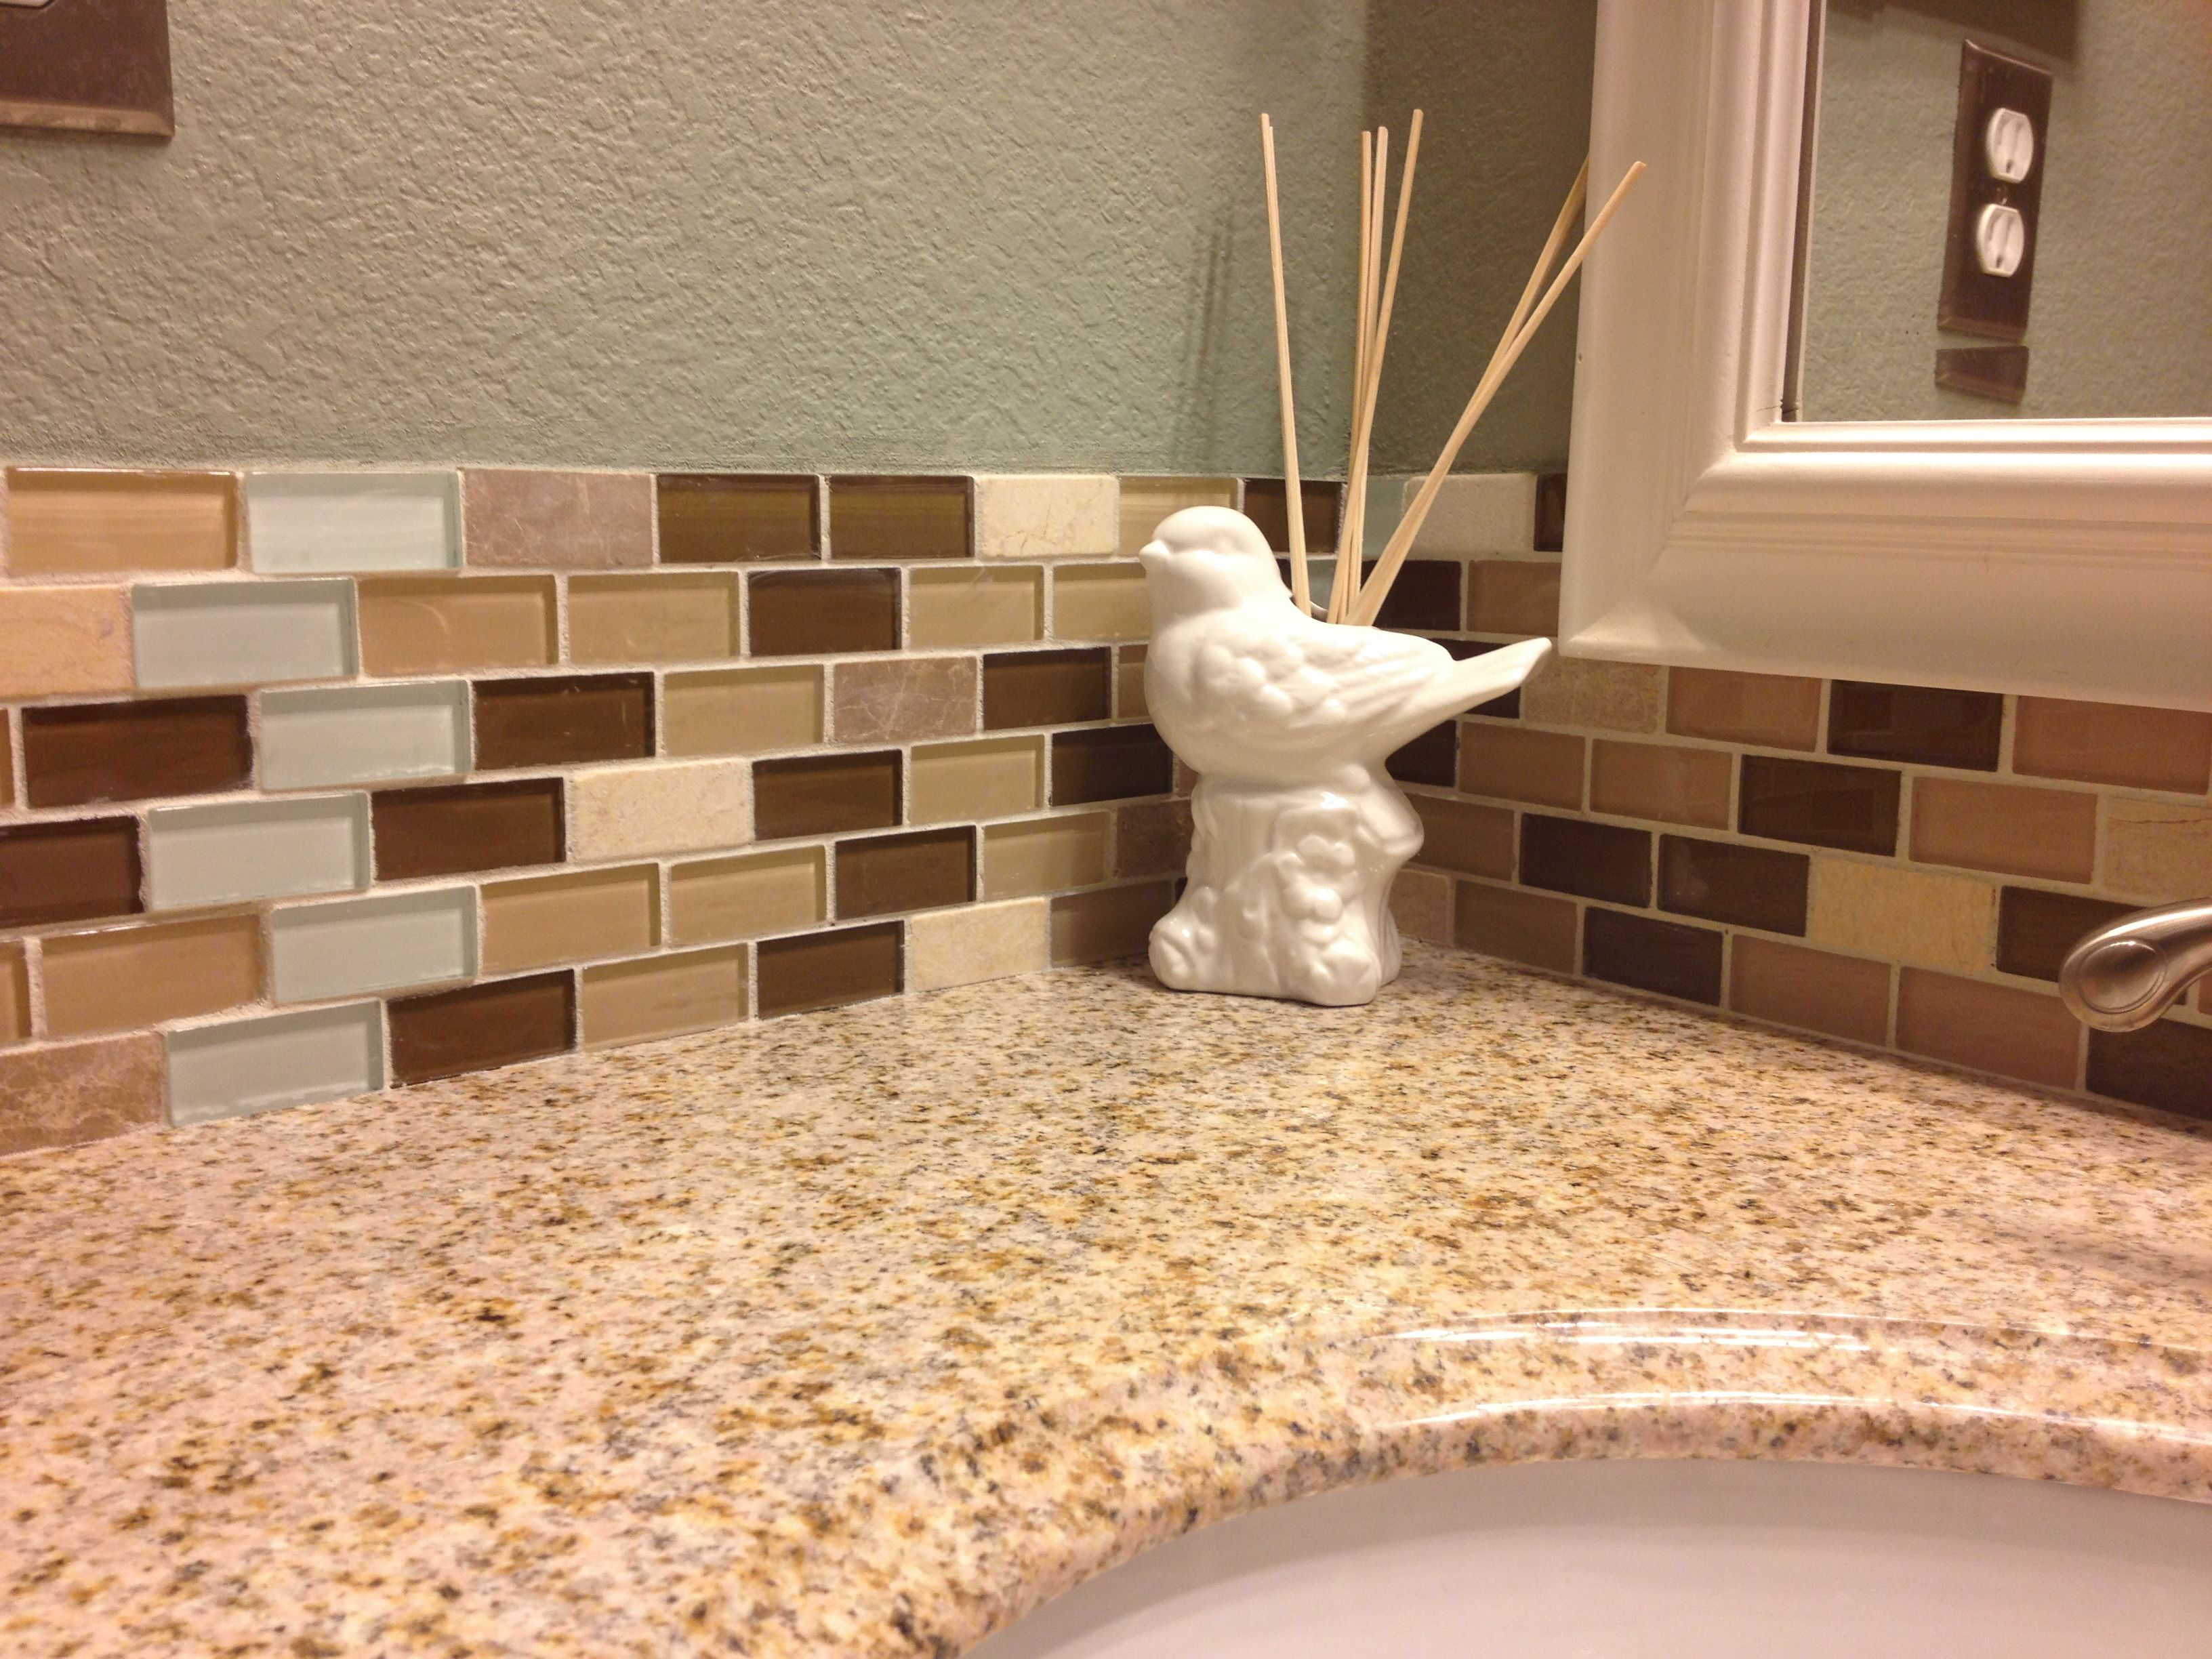 DIY Bathroom Tile Backsplash, Slightly Wraps The Mirror